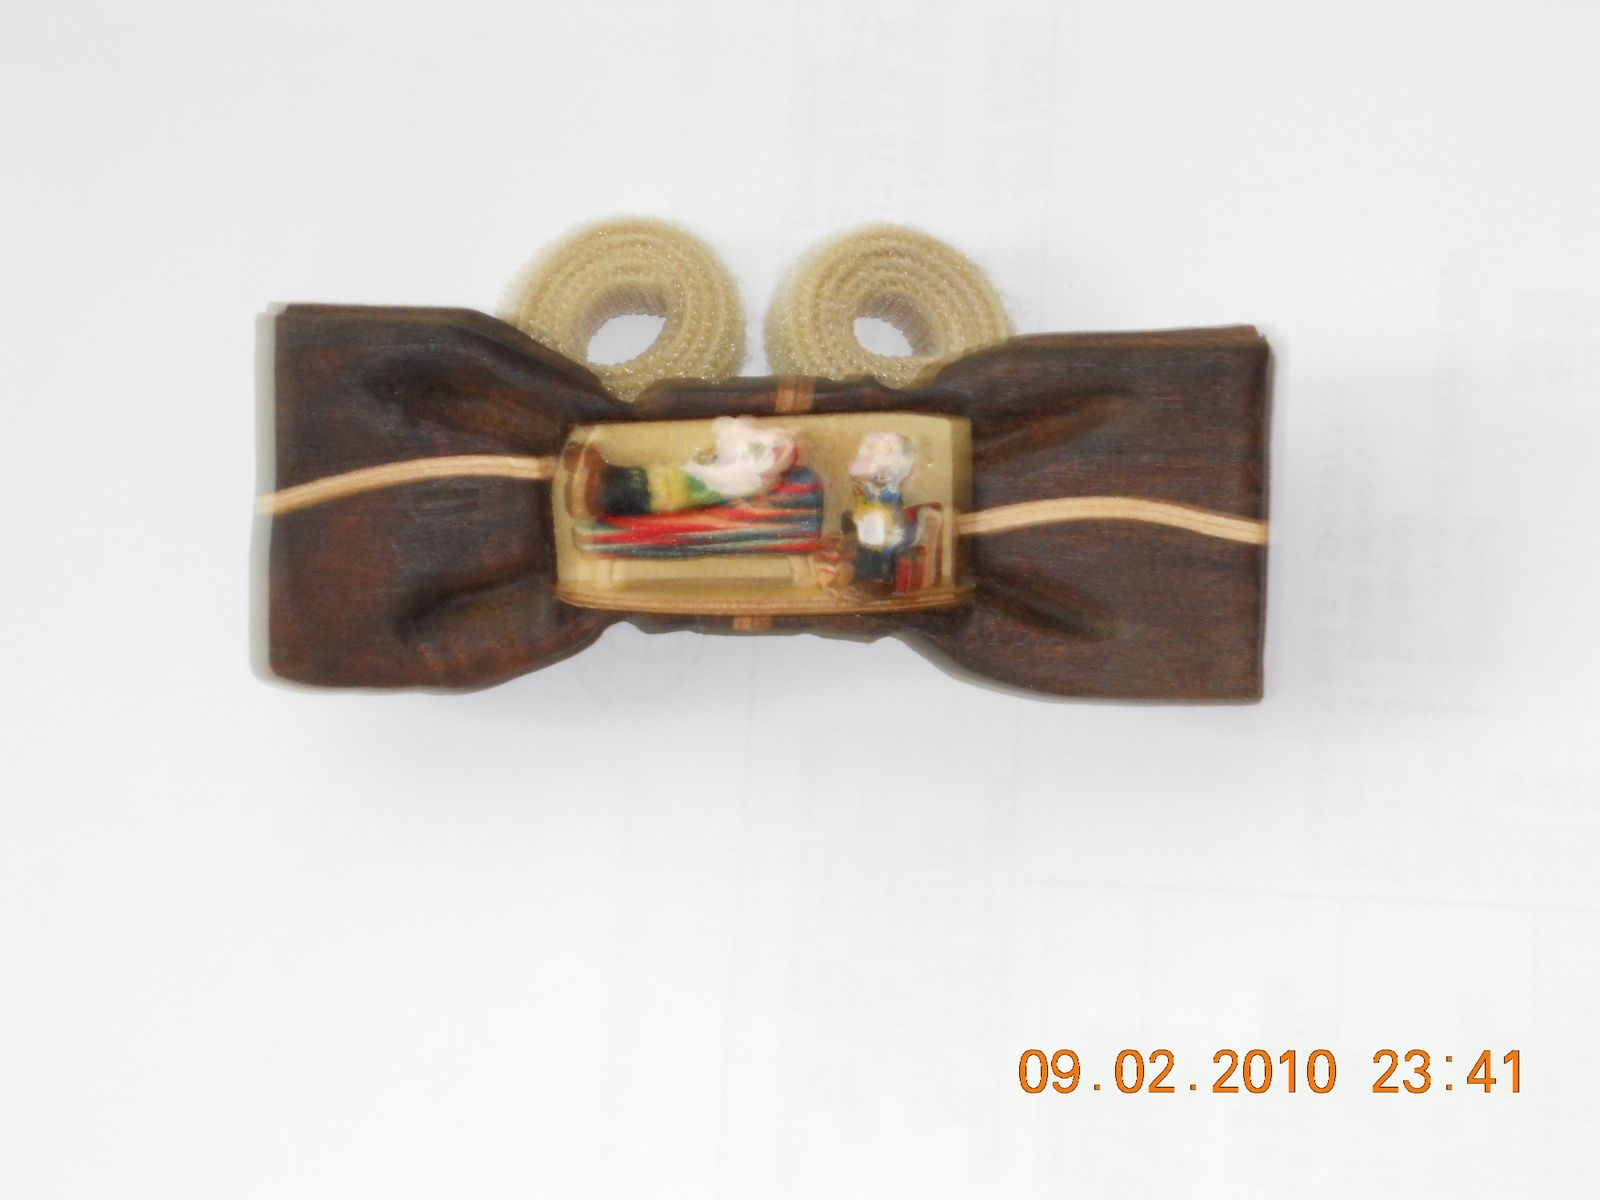 Psychiatrist Chair Hand Made Novelty Bow Tie Psychiatrist In Chair With